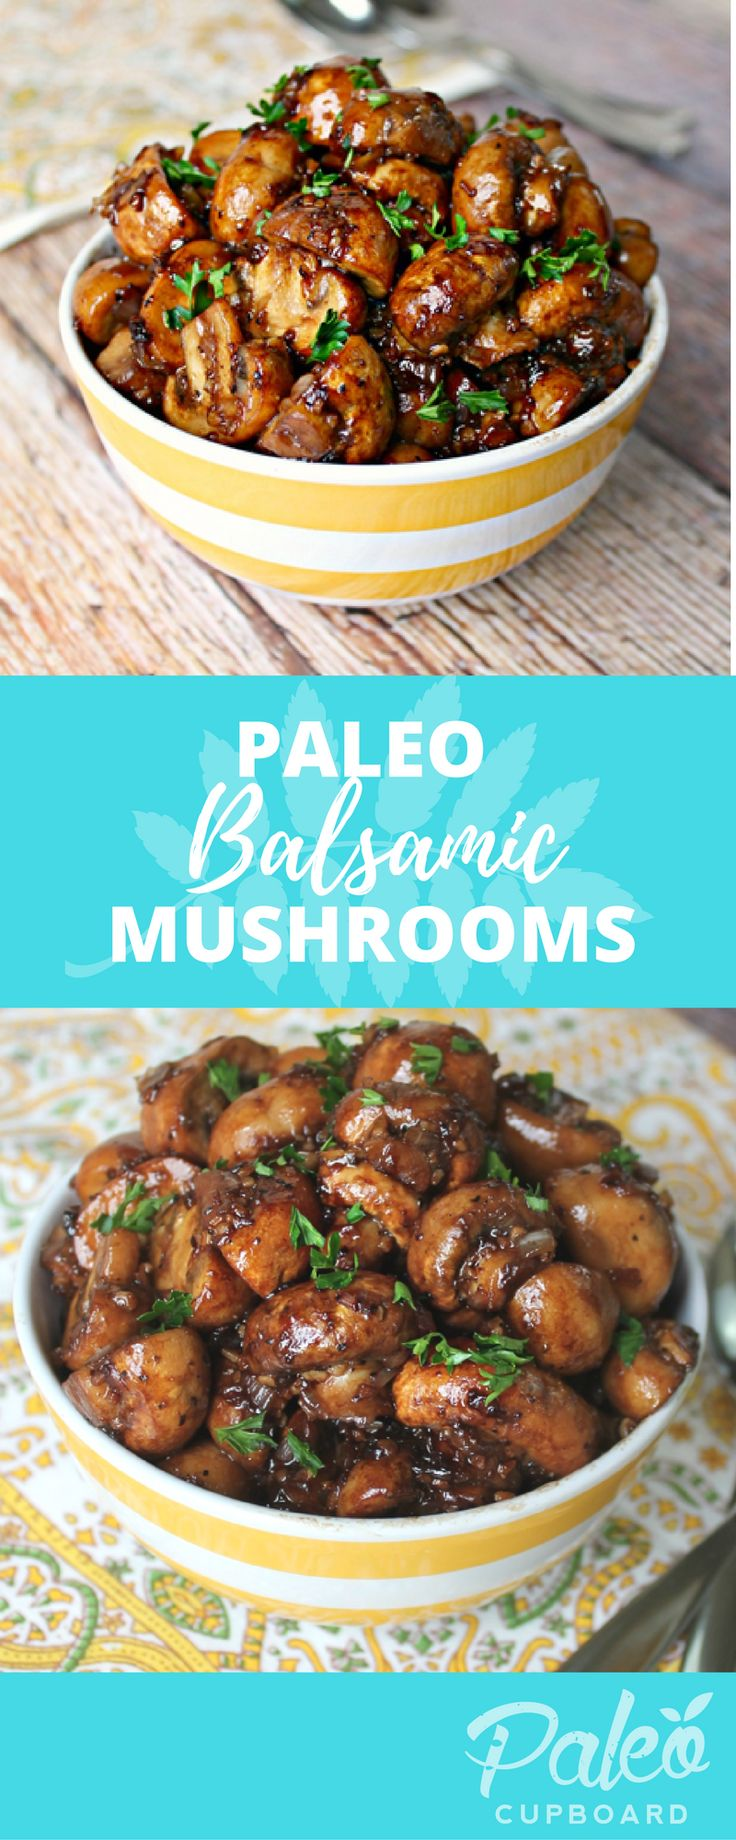 Easy Paleo Balsamic Sauteed Mushroom recipe - the perfect side dish for any protein!